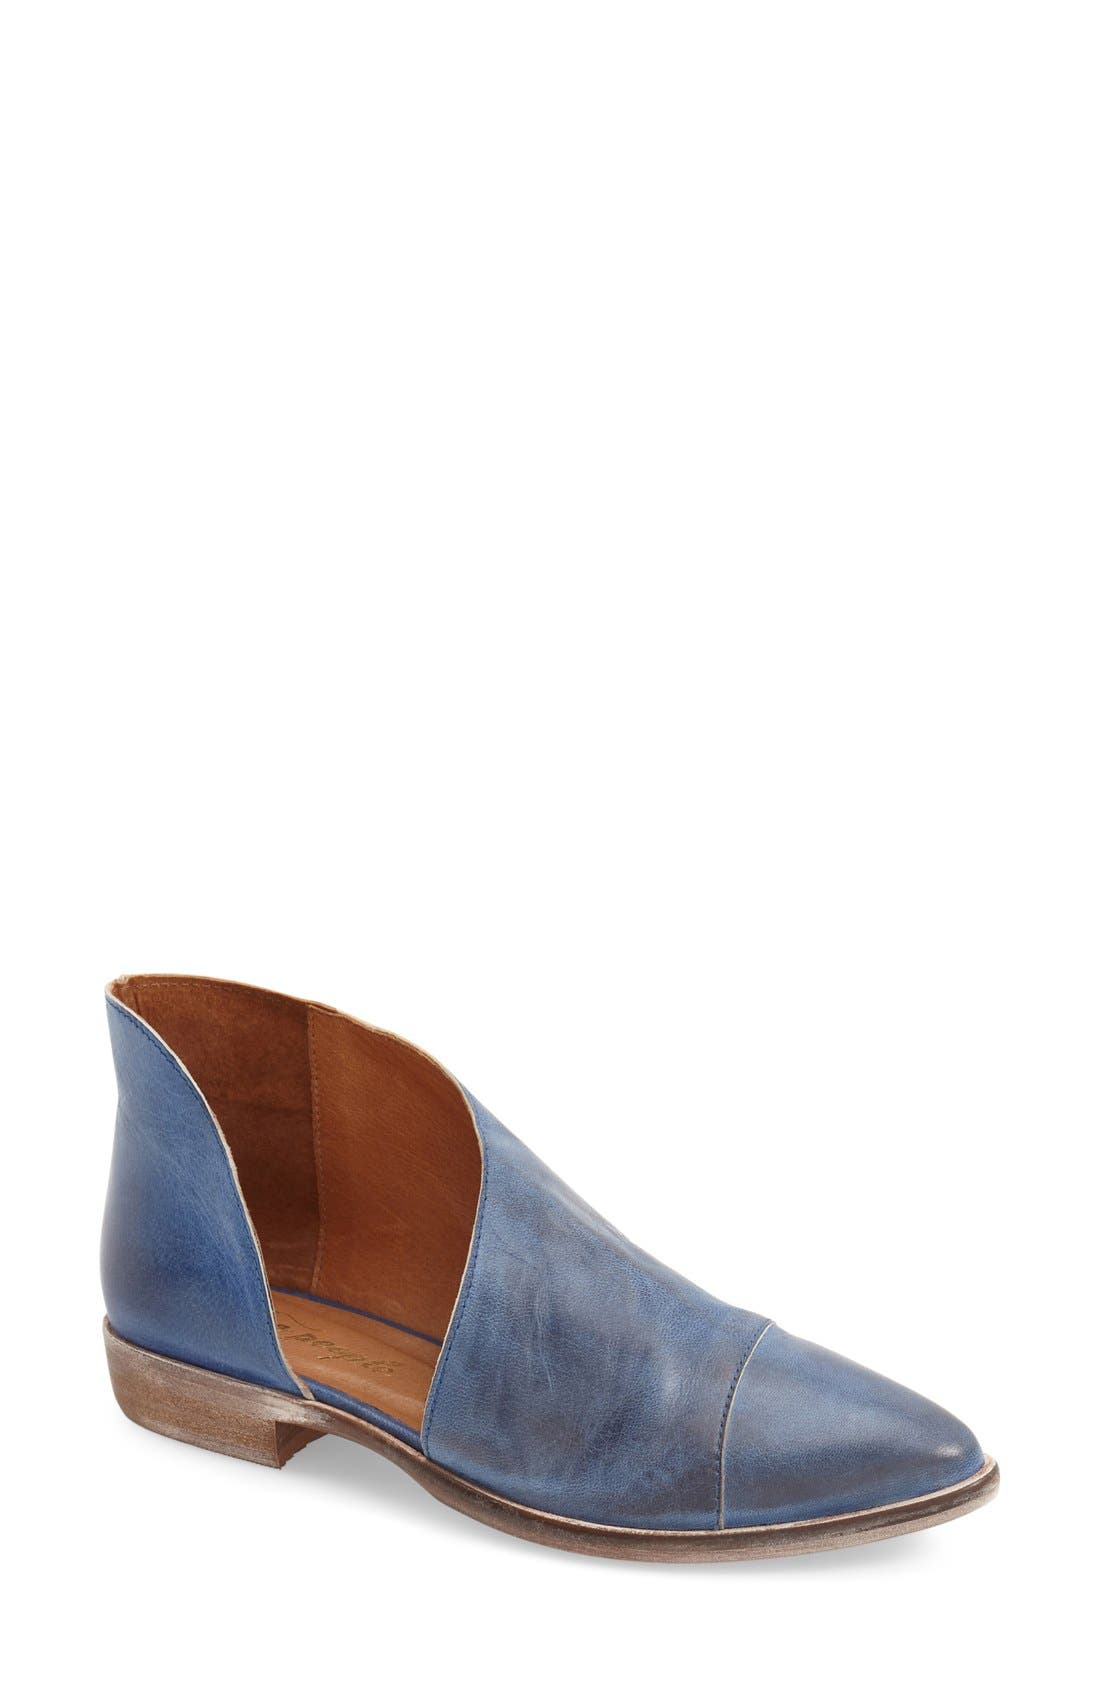 Alternate Image 1 Selected - Free People 'Royale' Pointy Toe Boot